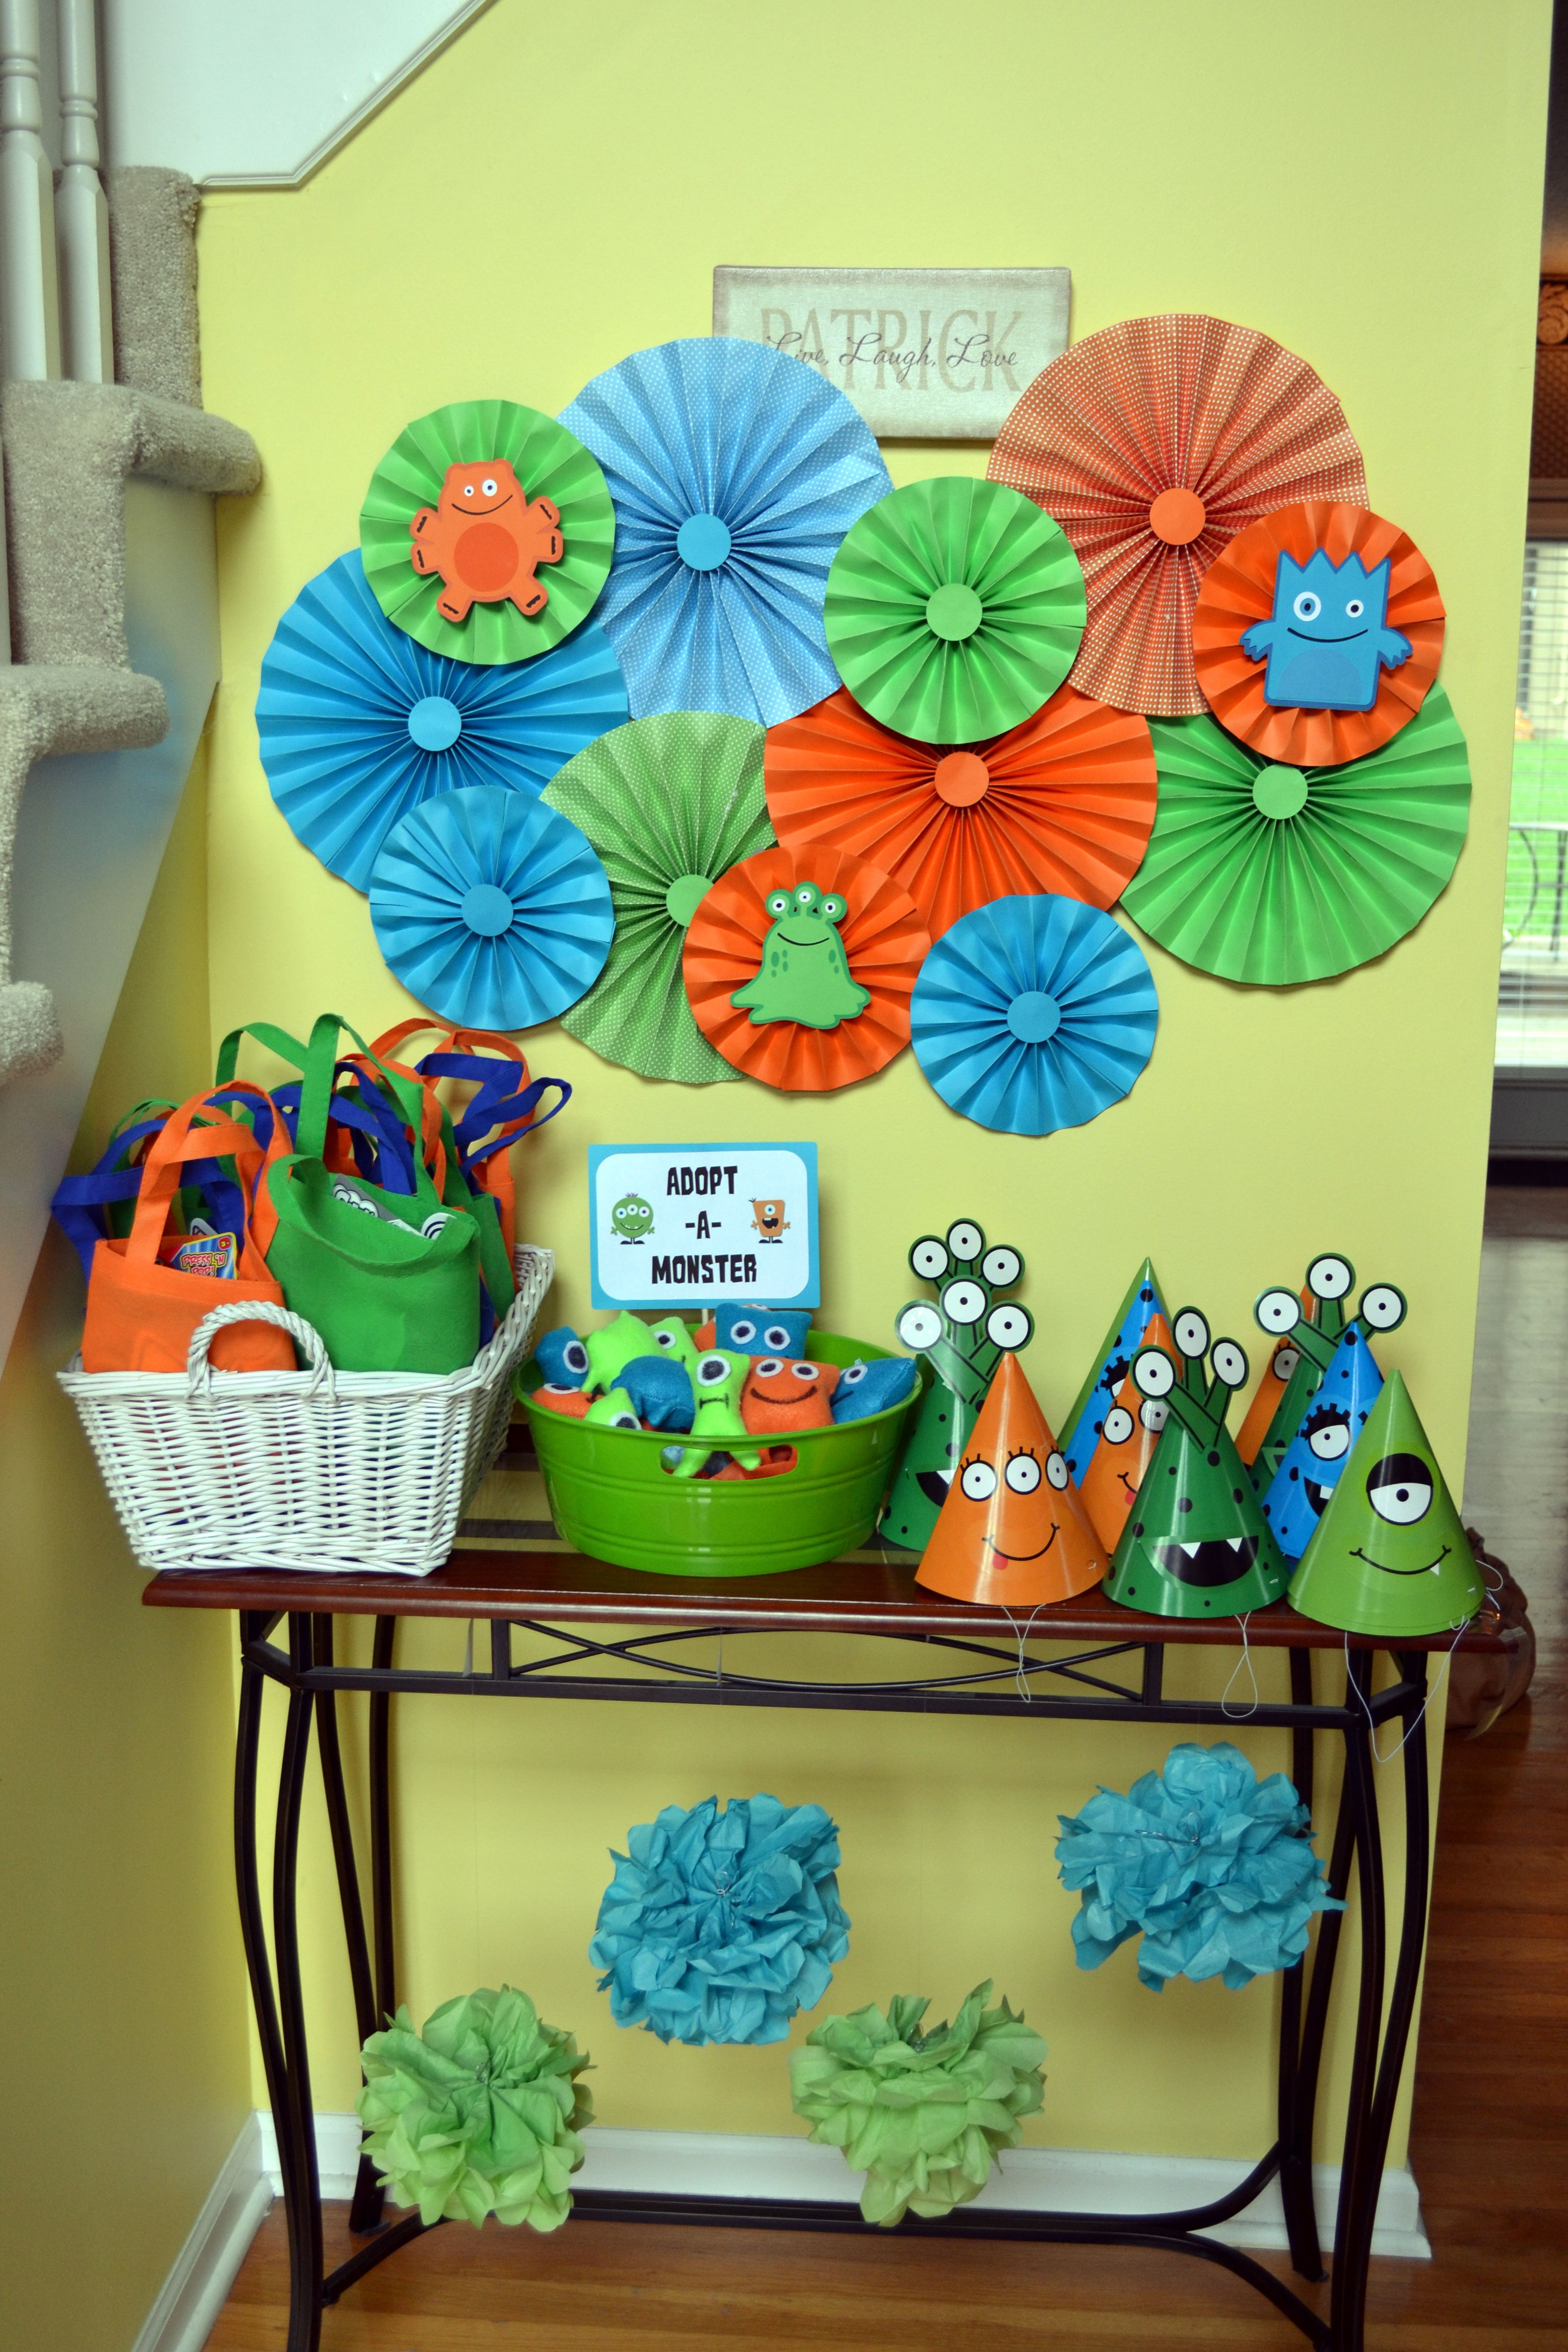 DIY Paper Medallions decorate the nook where the favor bags and party hats were #monster #birthday